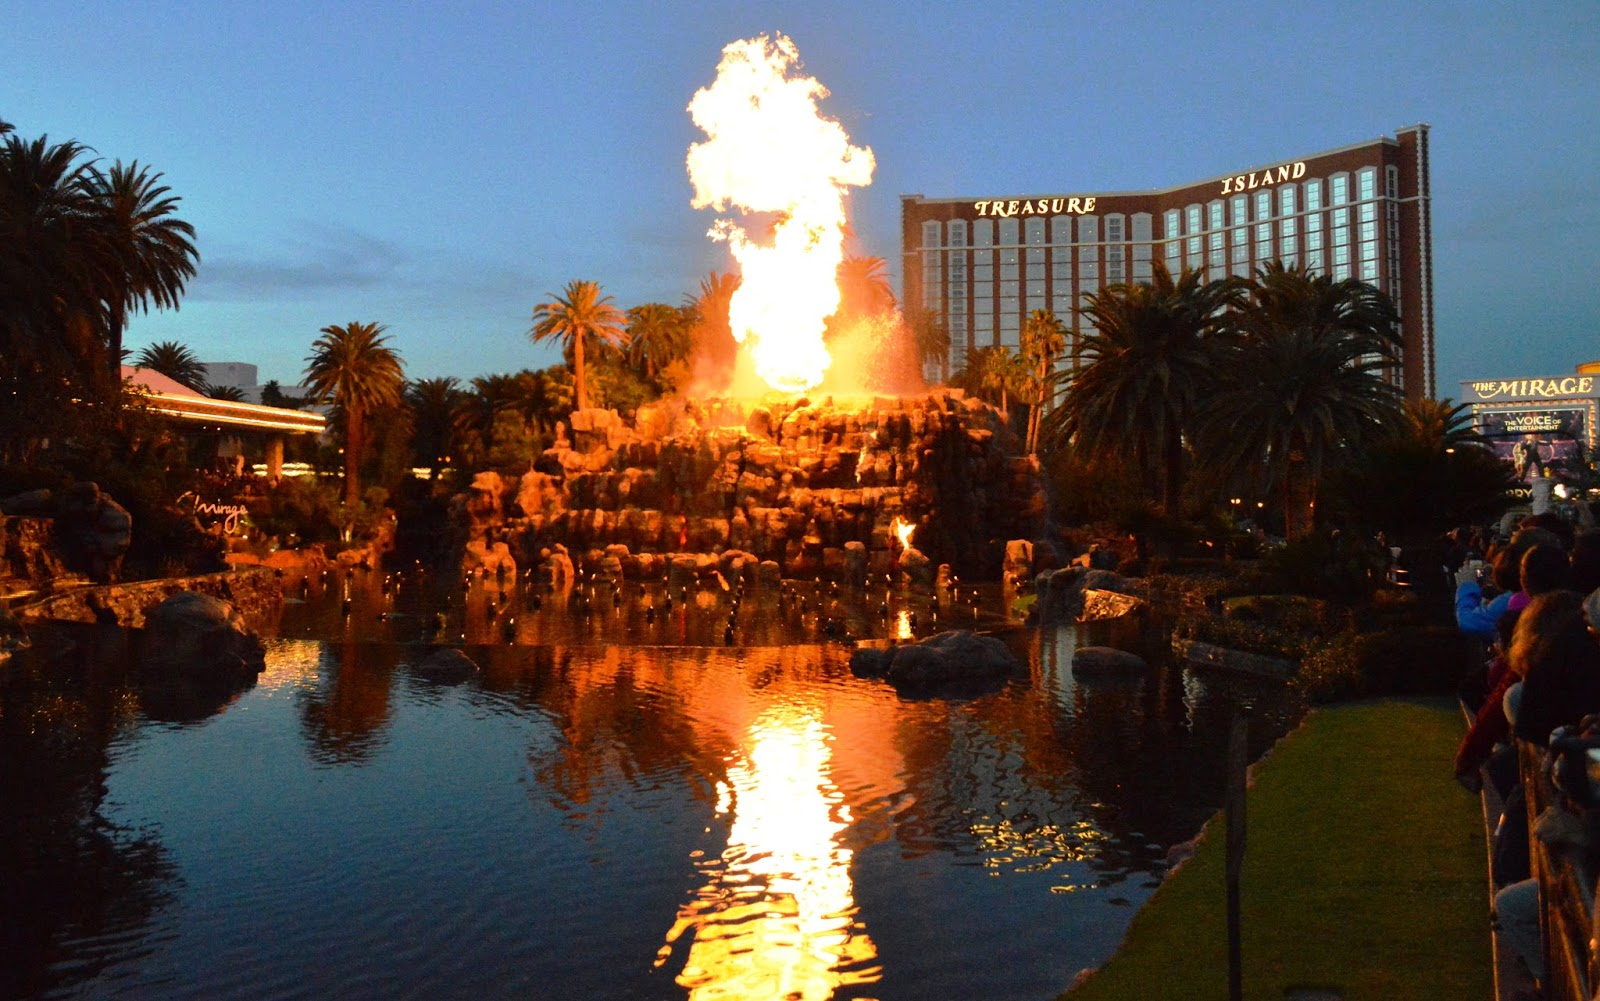 Volcano Las Vegas The Mirage